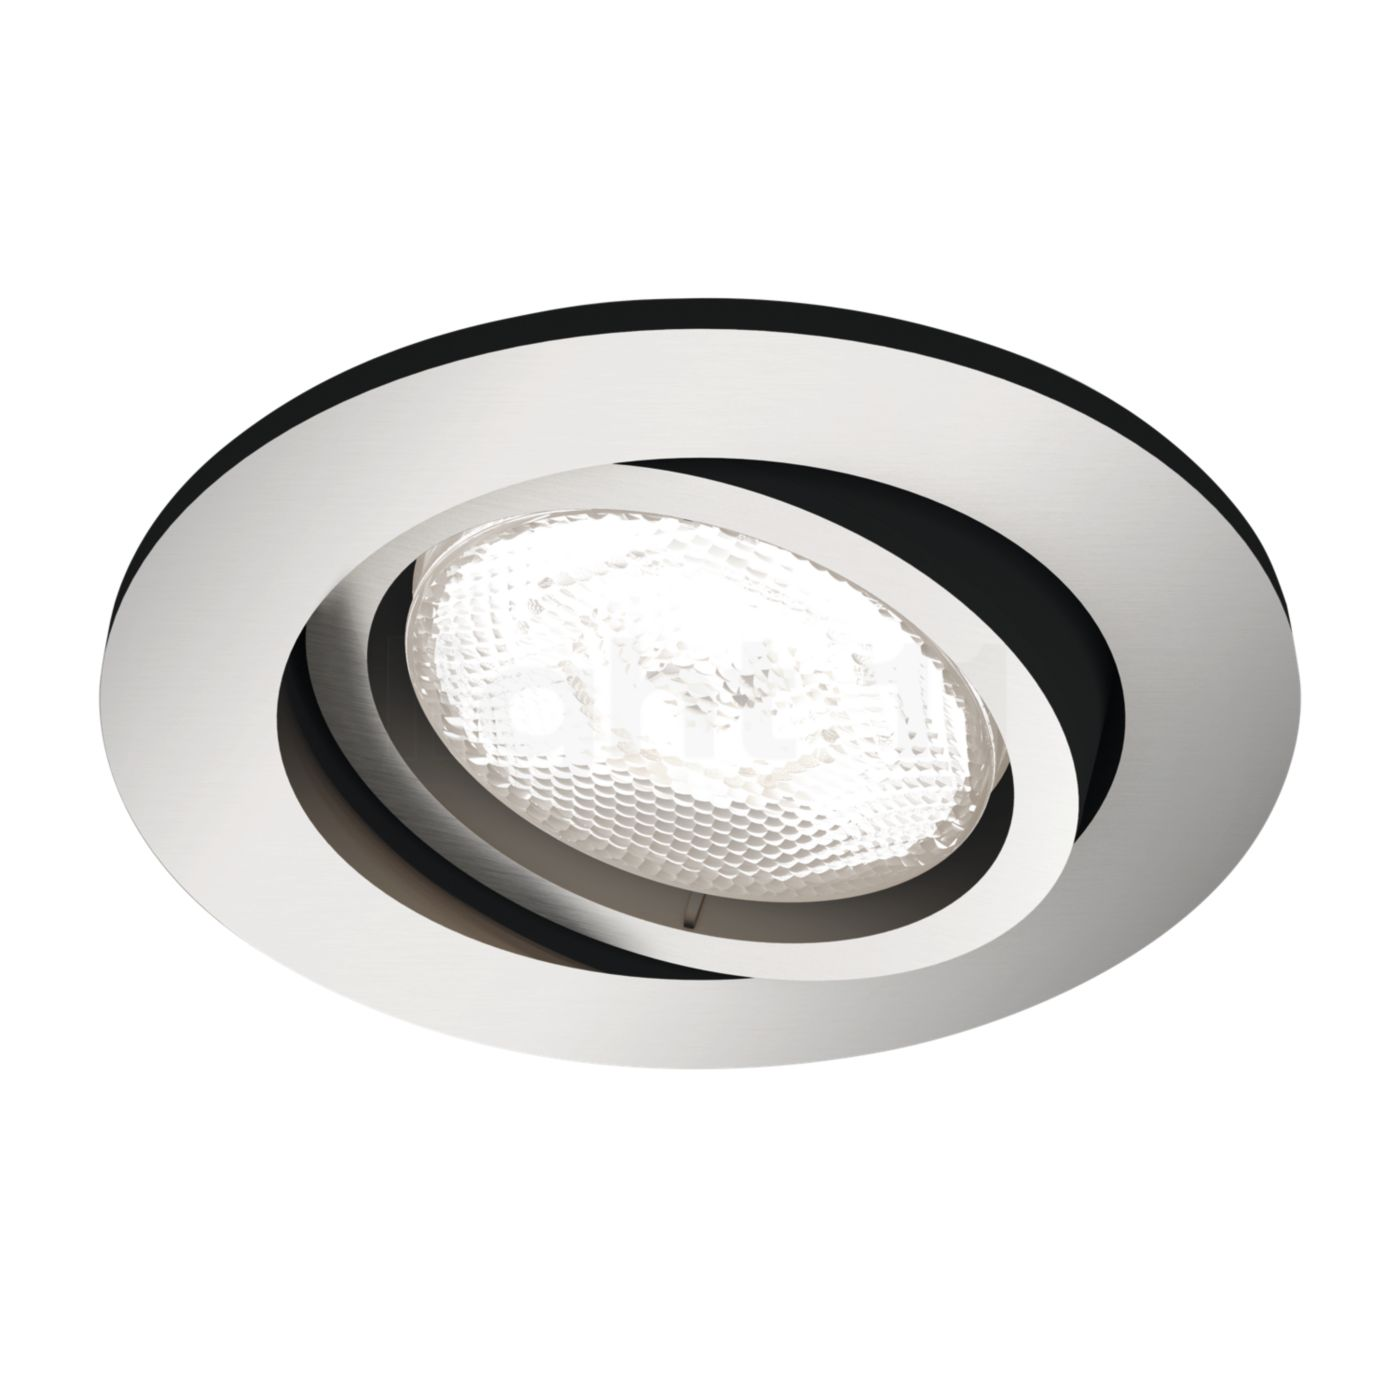 Philips myliving led recessed spotlight shellbark round philips myliving led recessed spotlight shellbark round spotlights floodlights aloadofball Gallery